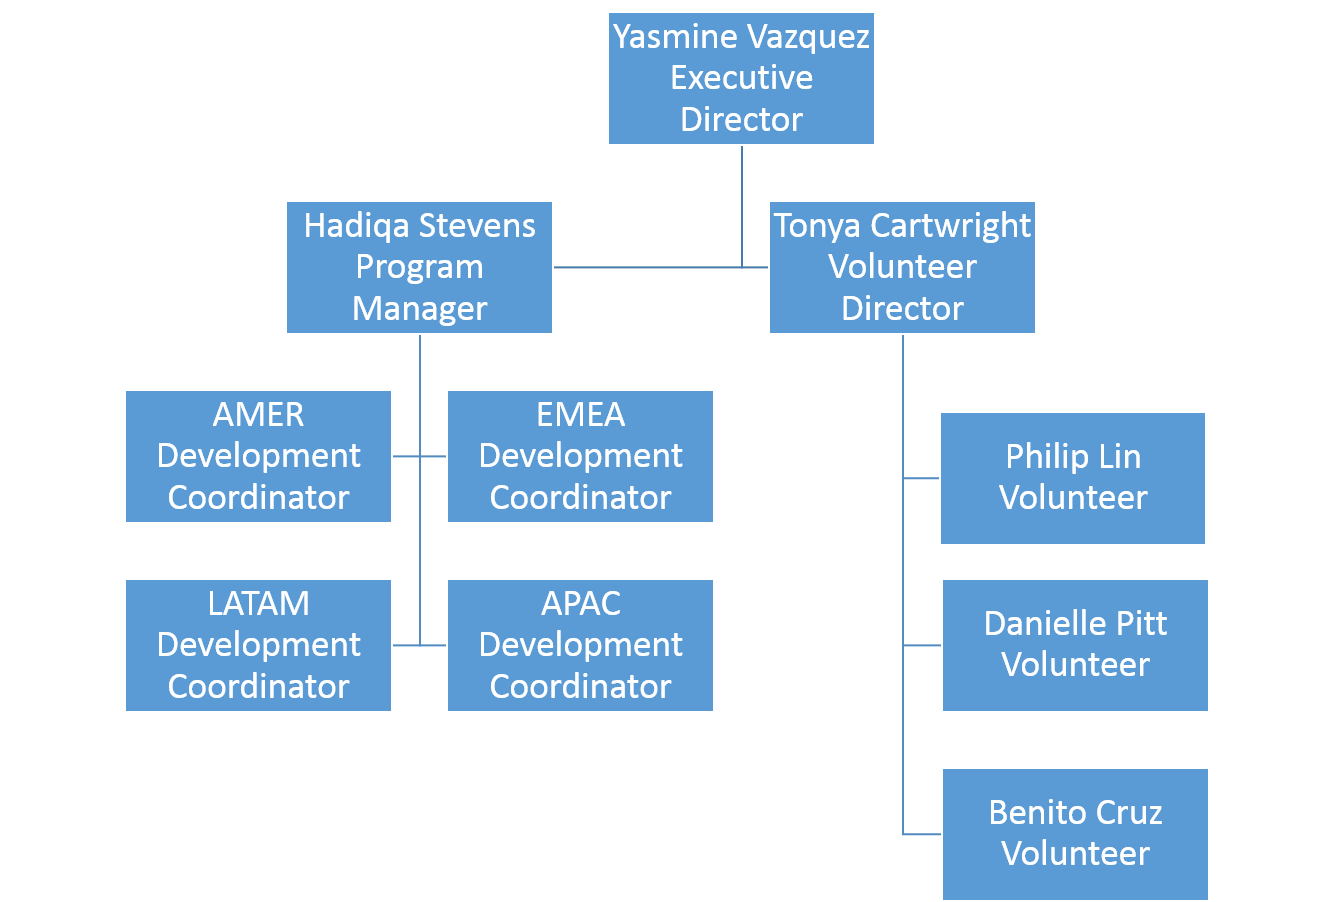 The Mosaic Council's organizational chart